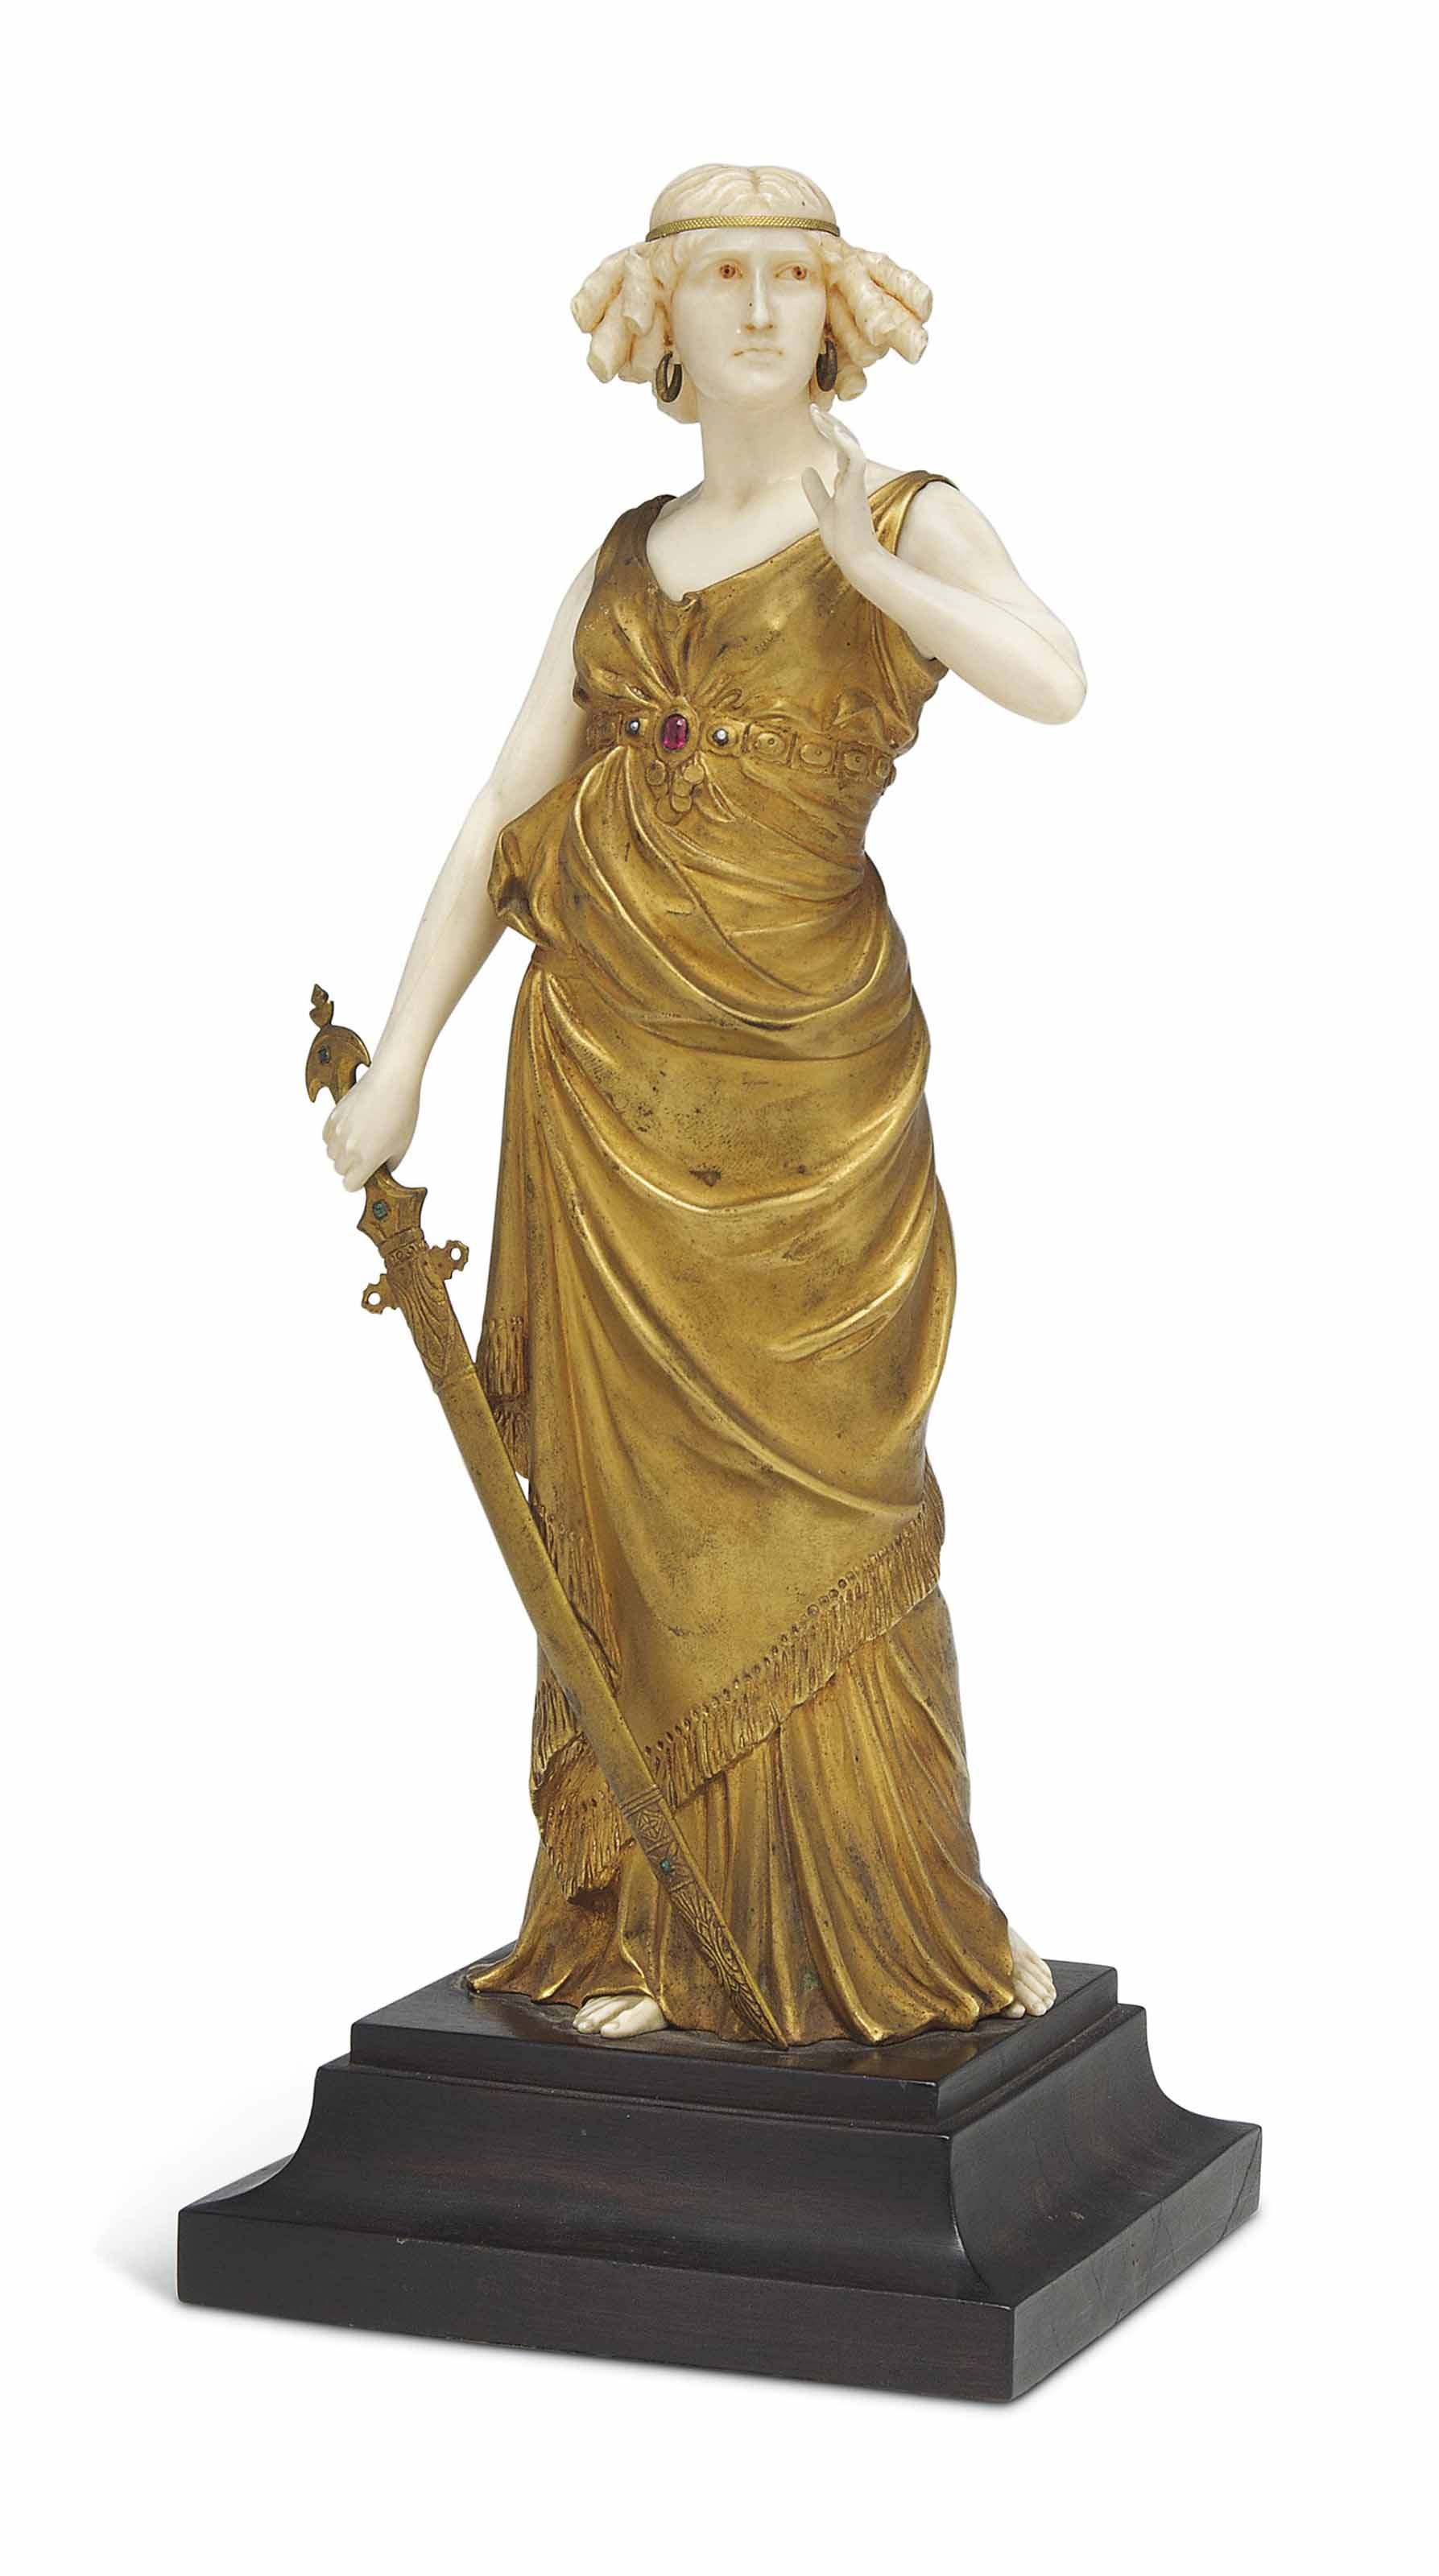 A FERDINAND PREISS (1882-1943) COLD-PAINTED BRONZE AND